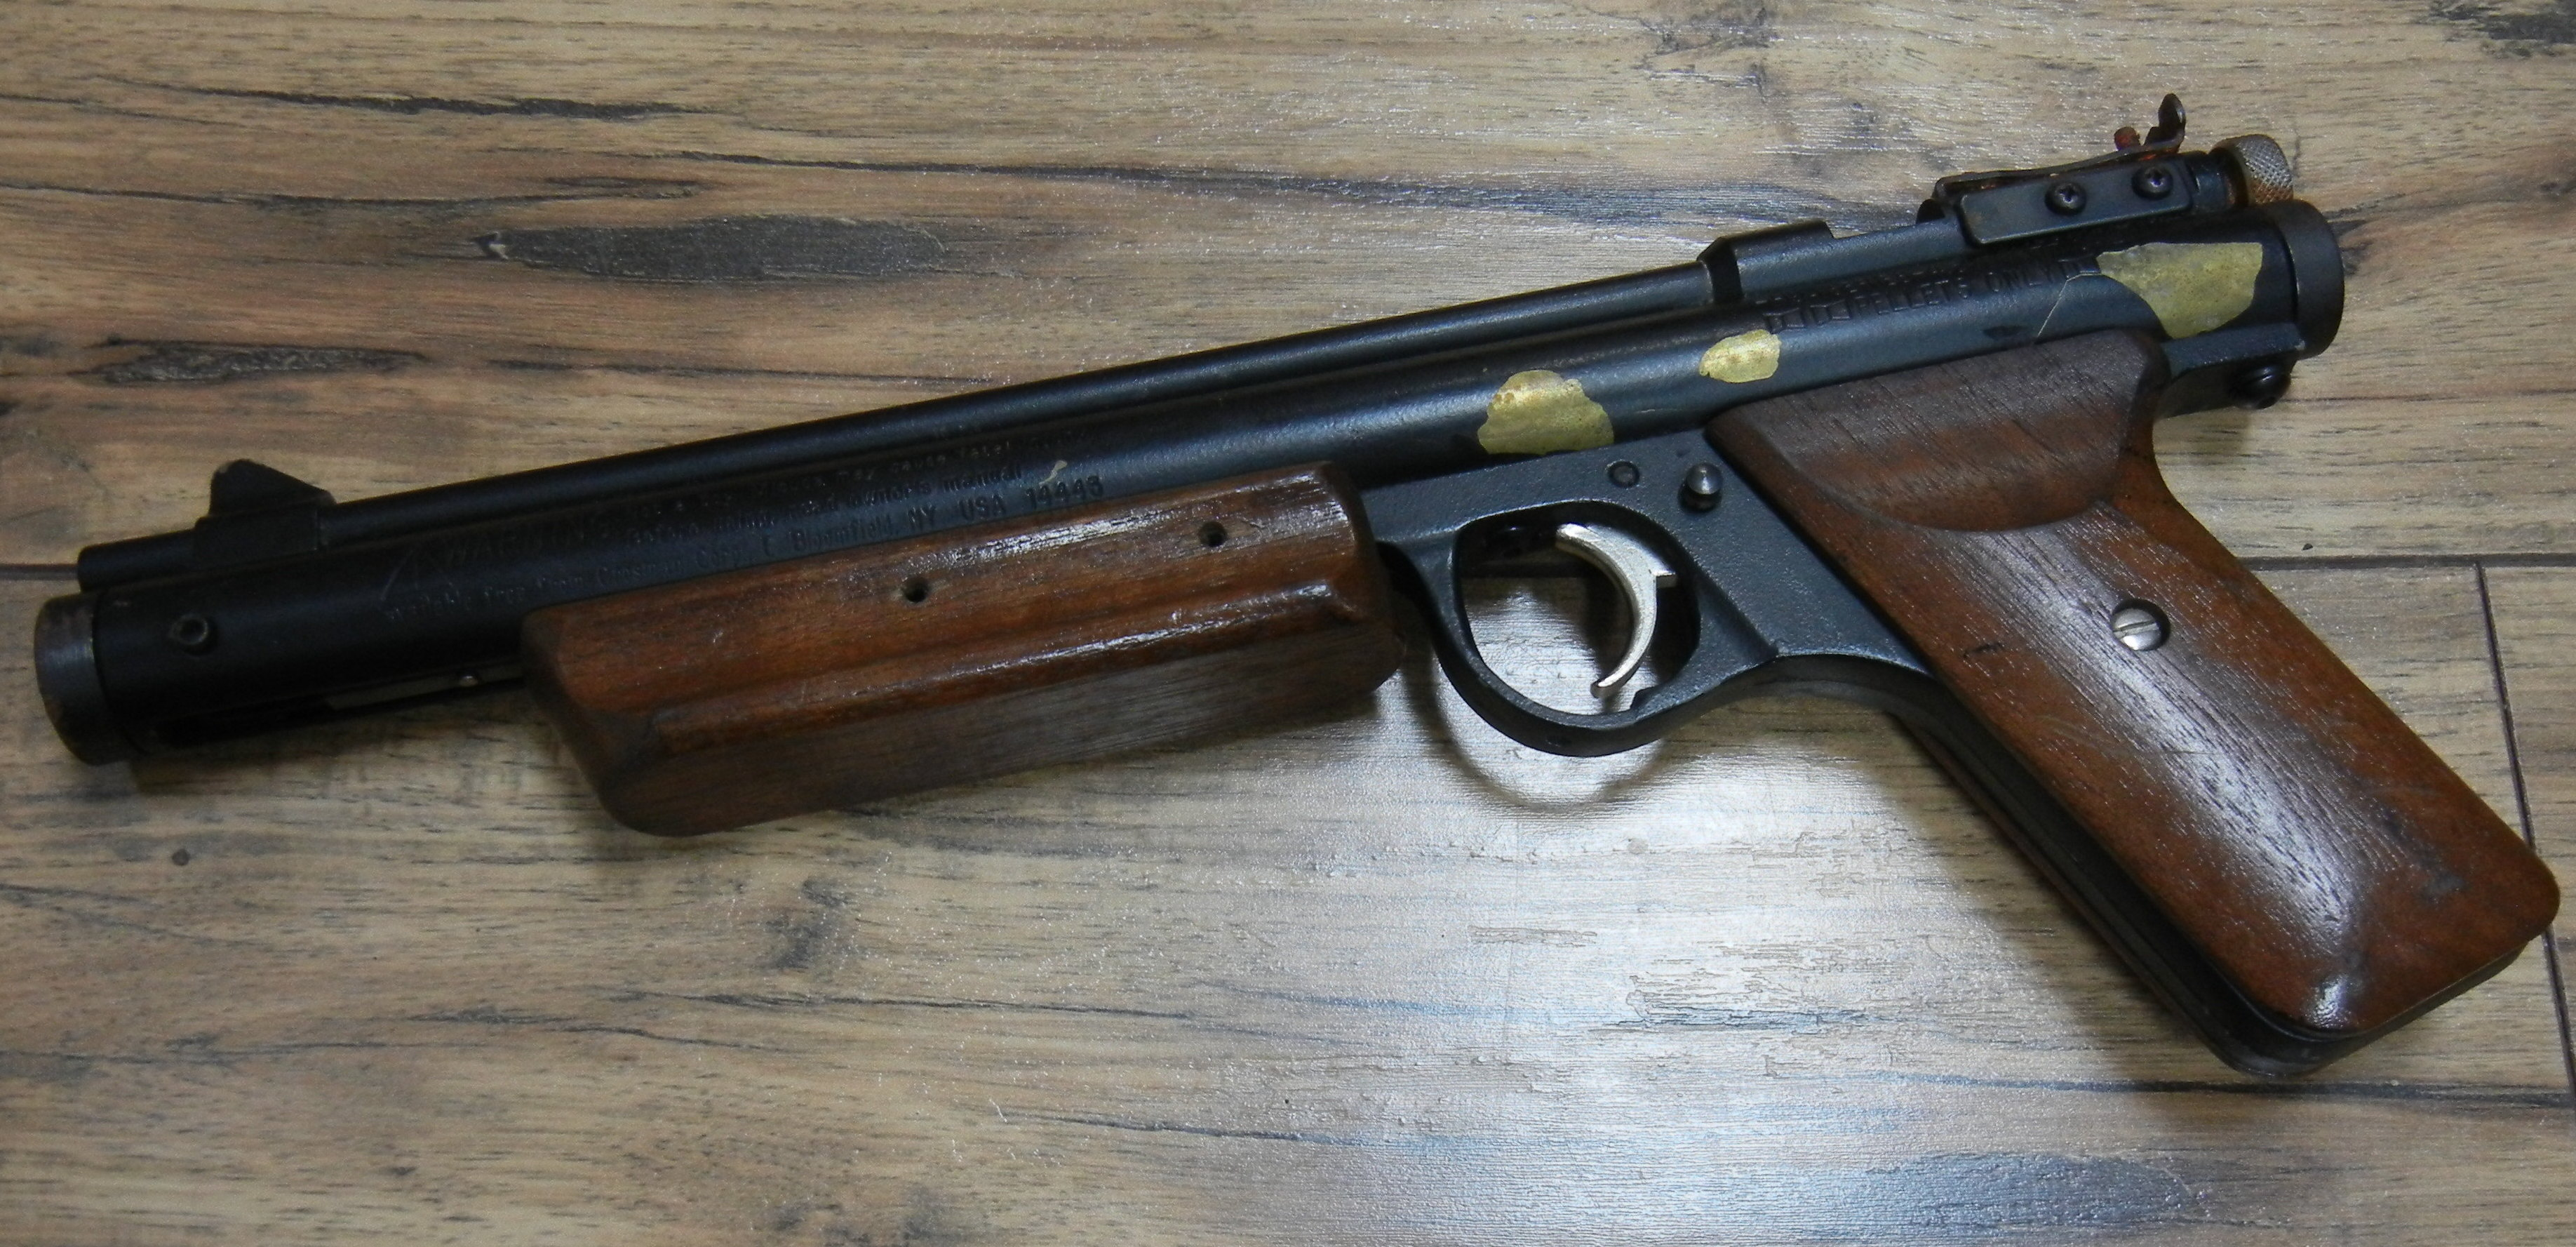 VINTAGE CROSMAN - H9A SERIES - PELLET GUN HUNTING SUPPLIES